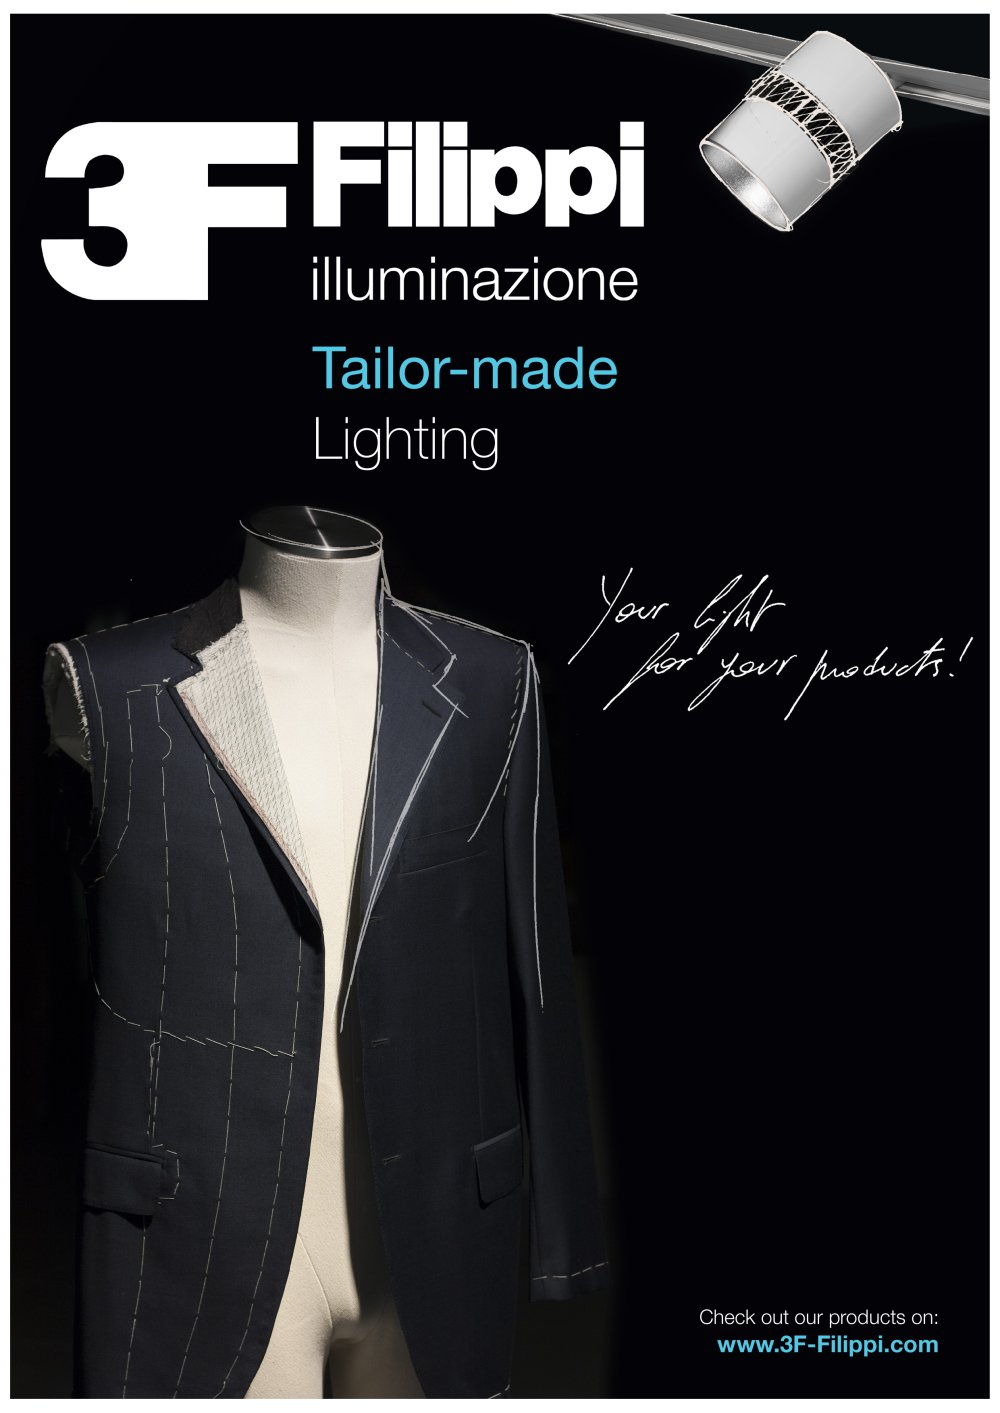 Tailor-made Lighting - 1 / 3 Pages  sc 1 st  Catalogues Archiexpo & Tailor-made Lighting - 3F Filippi S.p.A. - PDF Catalogues ... azcodes.com